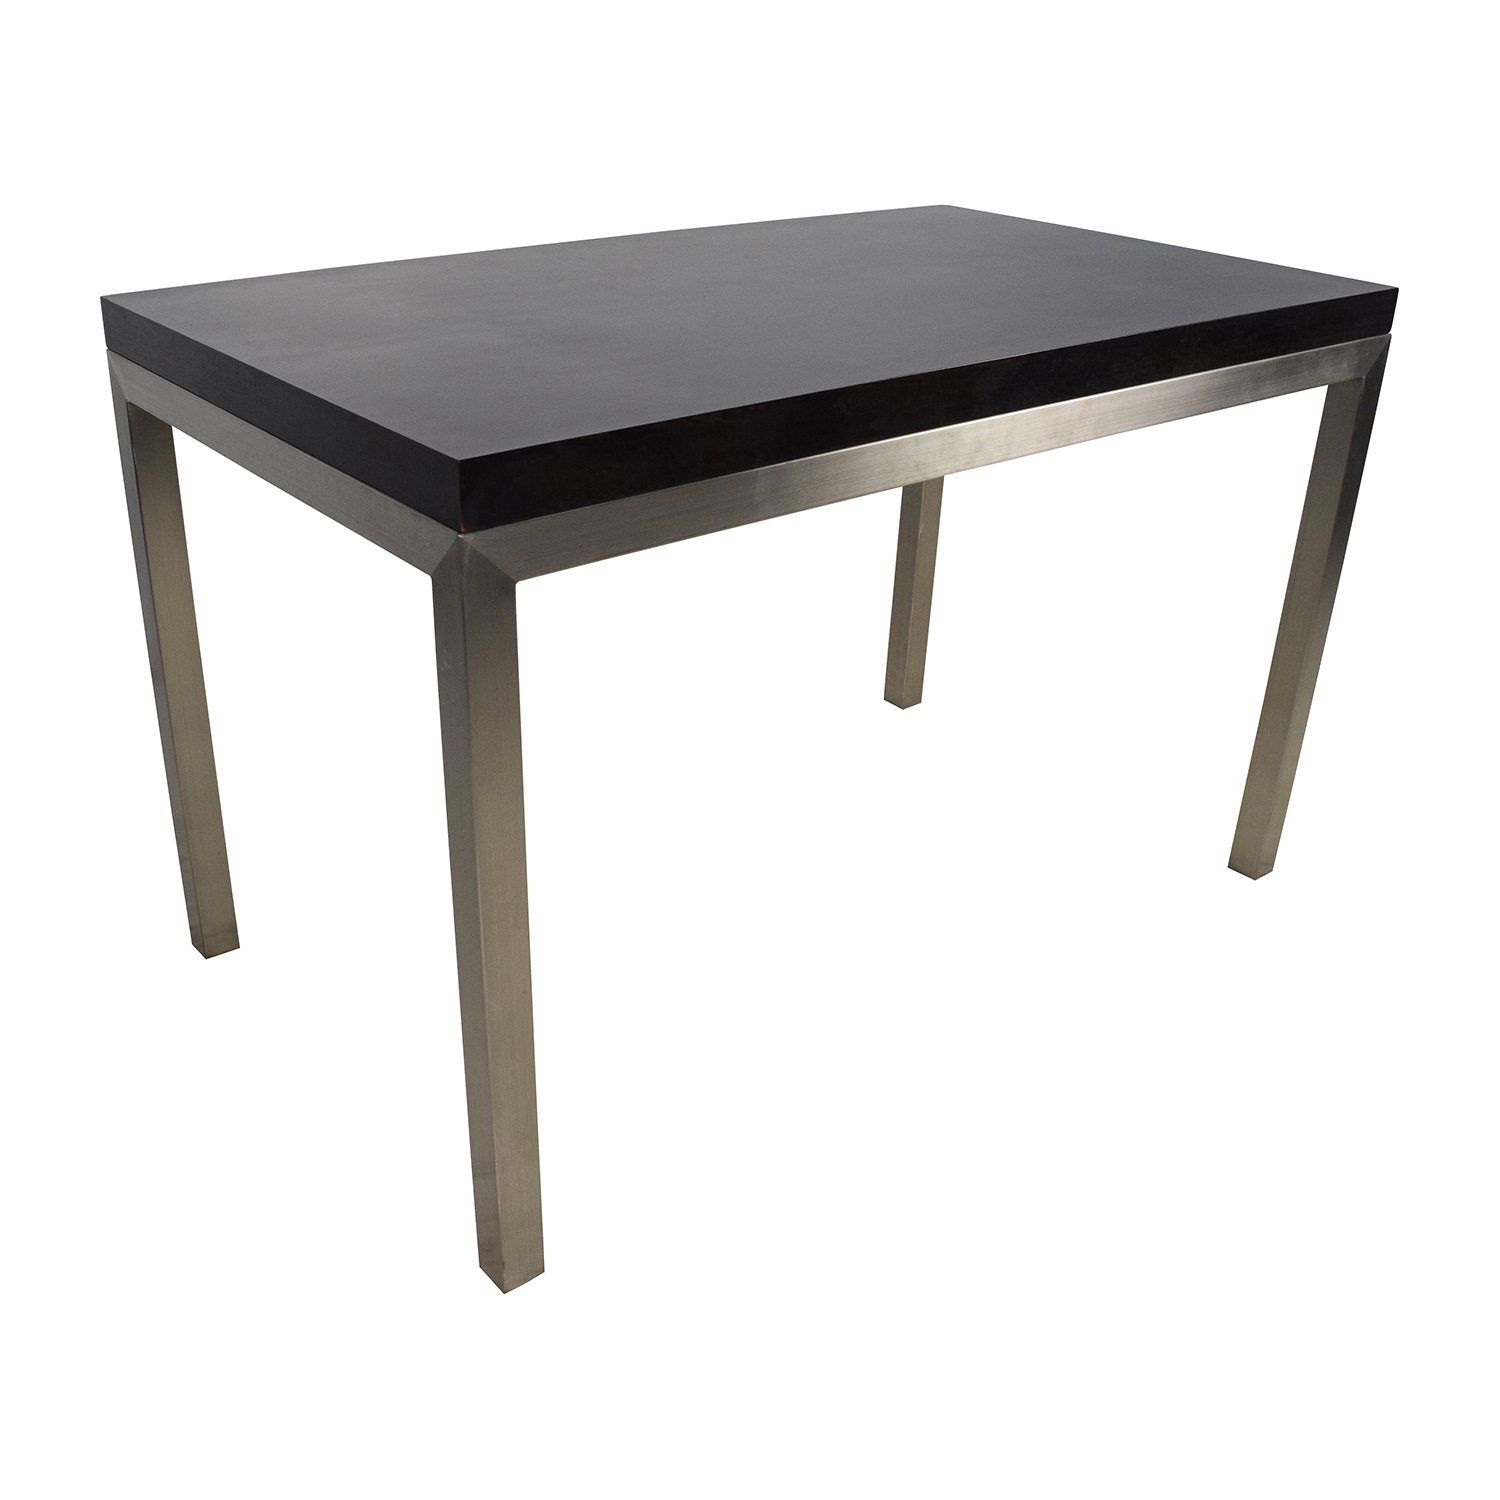 ... Crate And Barrel Crate U0026 Barrel Parsons Dining Table ...